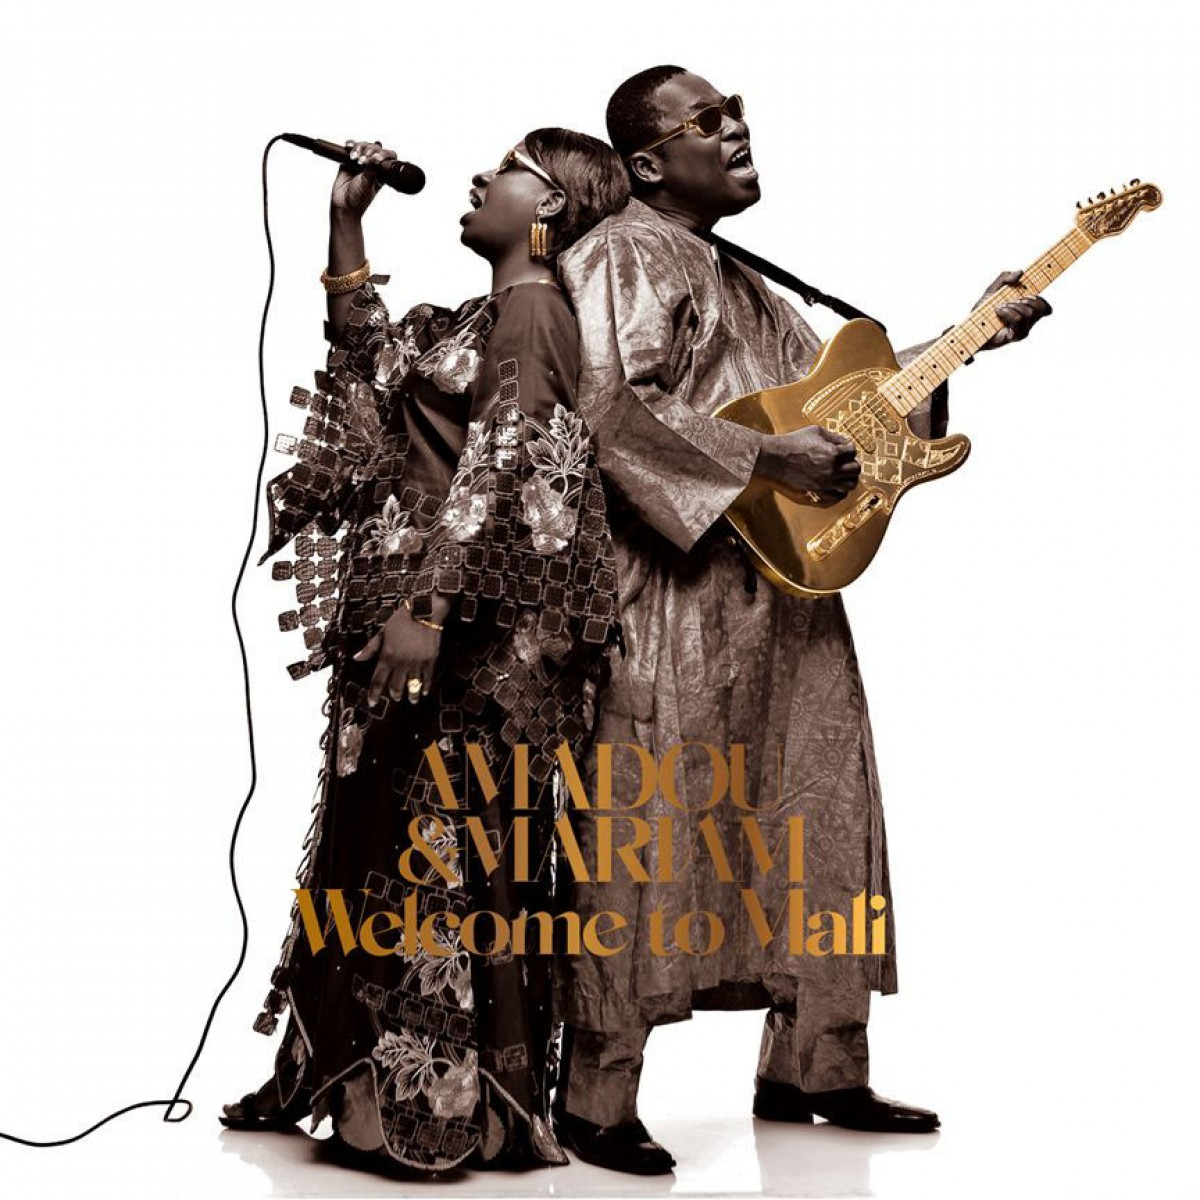 Amadou & Mariam - Welcome to Mali CD - 825646927869